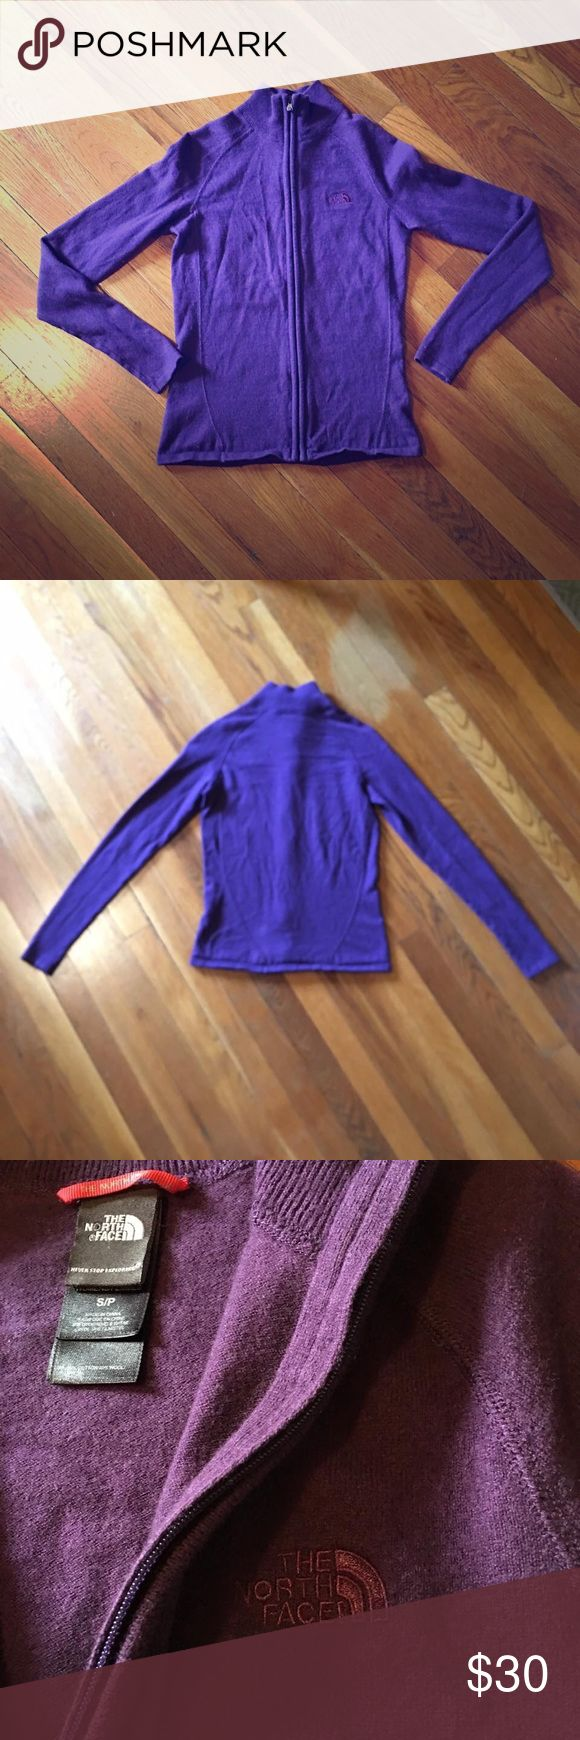 The North Face purple sweater Deep purple The North Face sweater, size women's small. Last picture shows truest color, a plumy purple. It's not as blue looking in person. Like new from a smoke and pet free environment. I'm open to trades :) 50% cotton 40% laine 10% nylon The North Face Sweaters